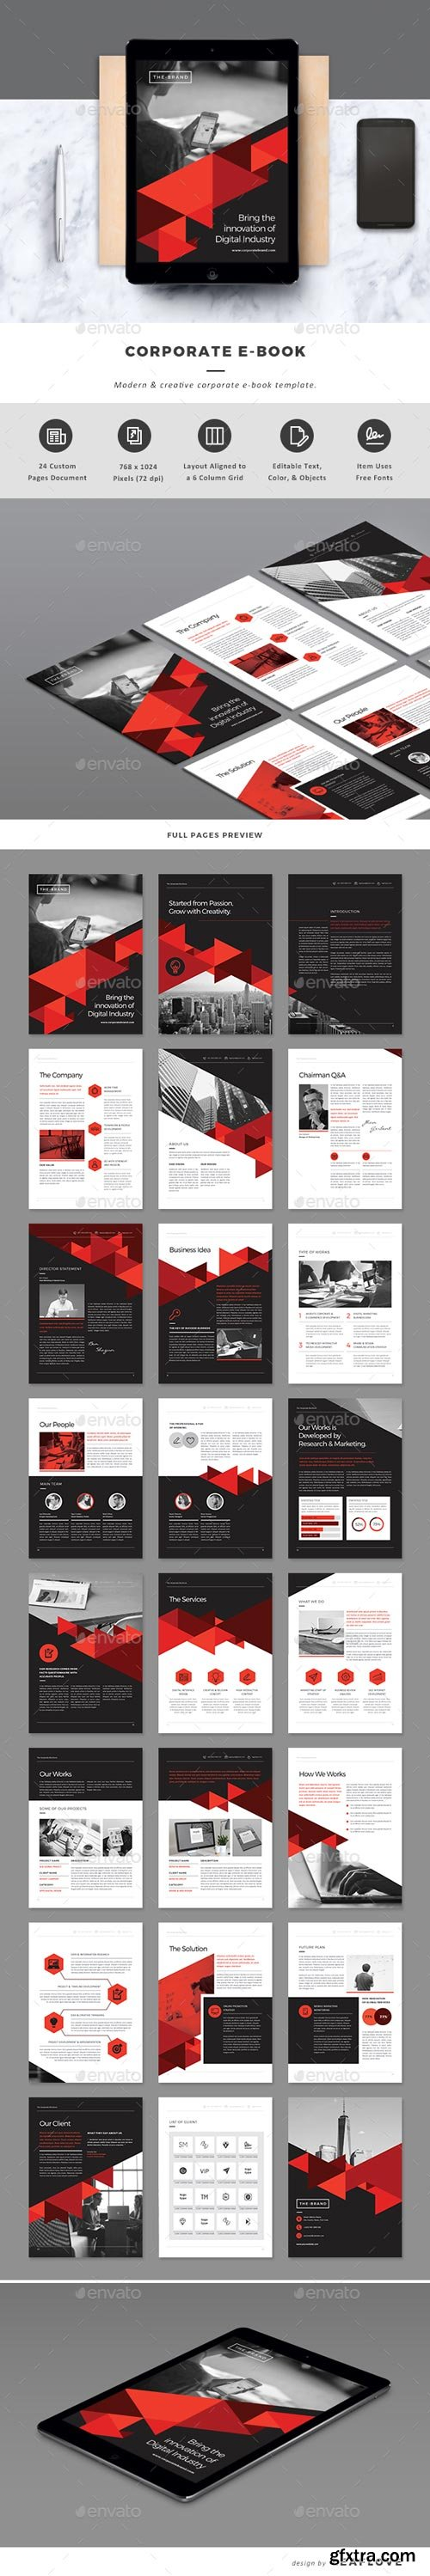 GraphicRiver - Corporate E-Book - 19830302